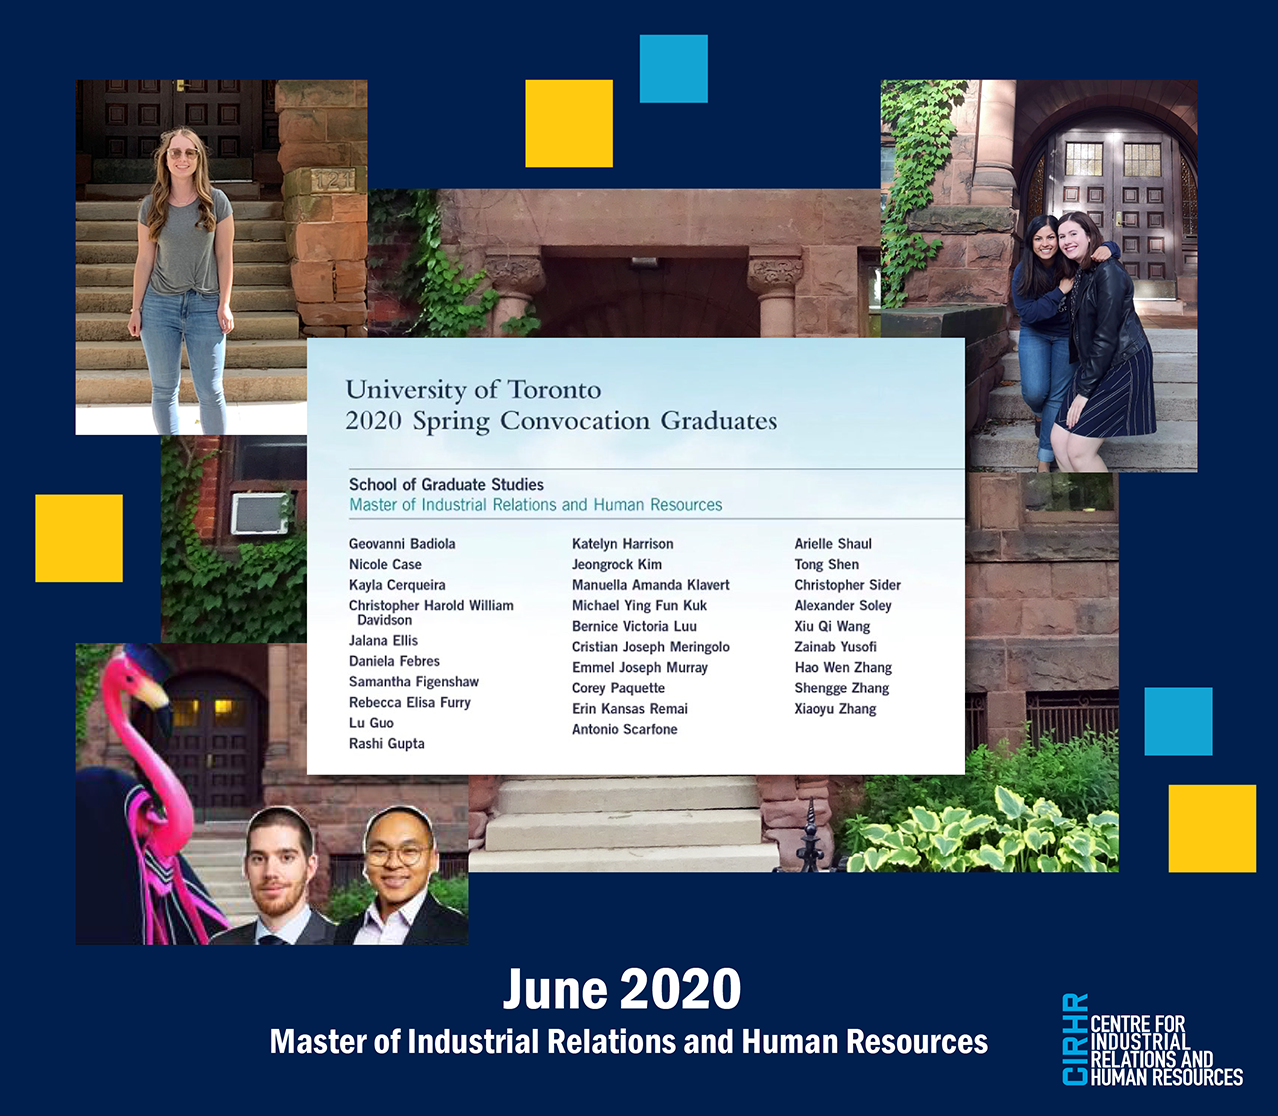 Collage showing members of the graduating class in front of the CIRHR